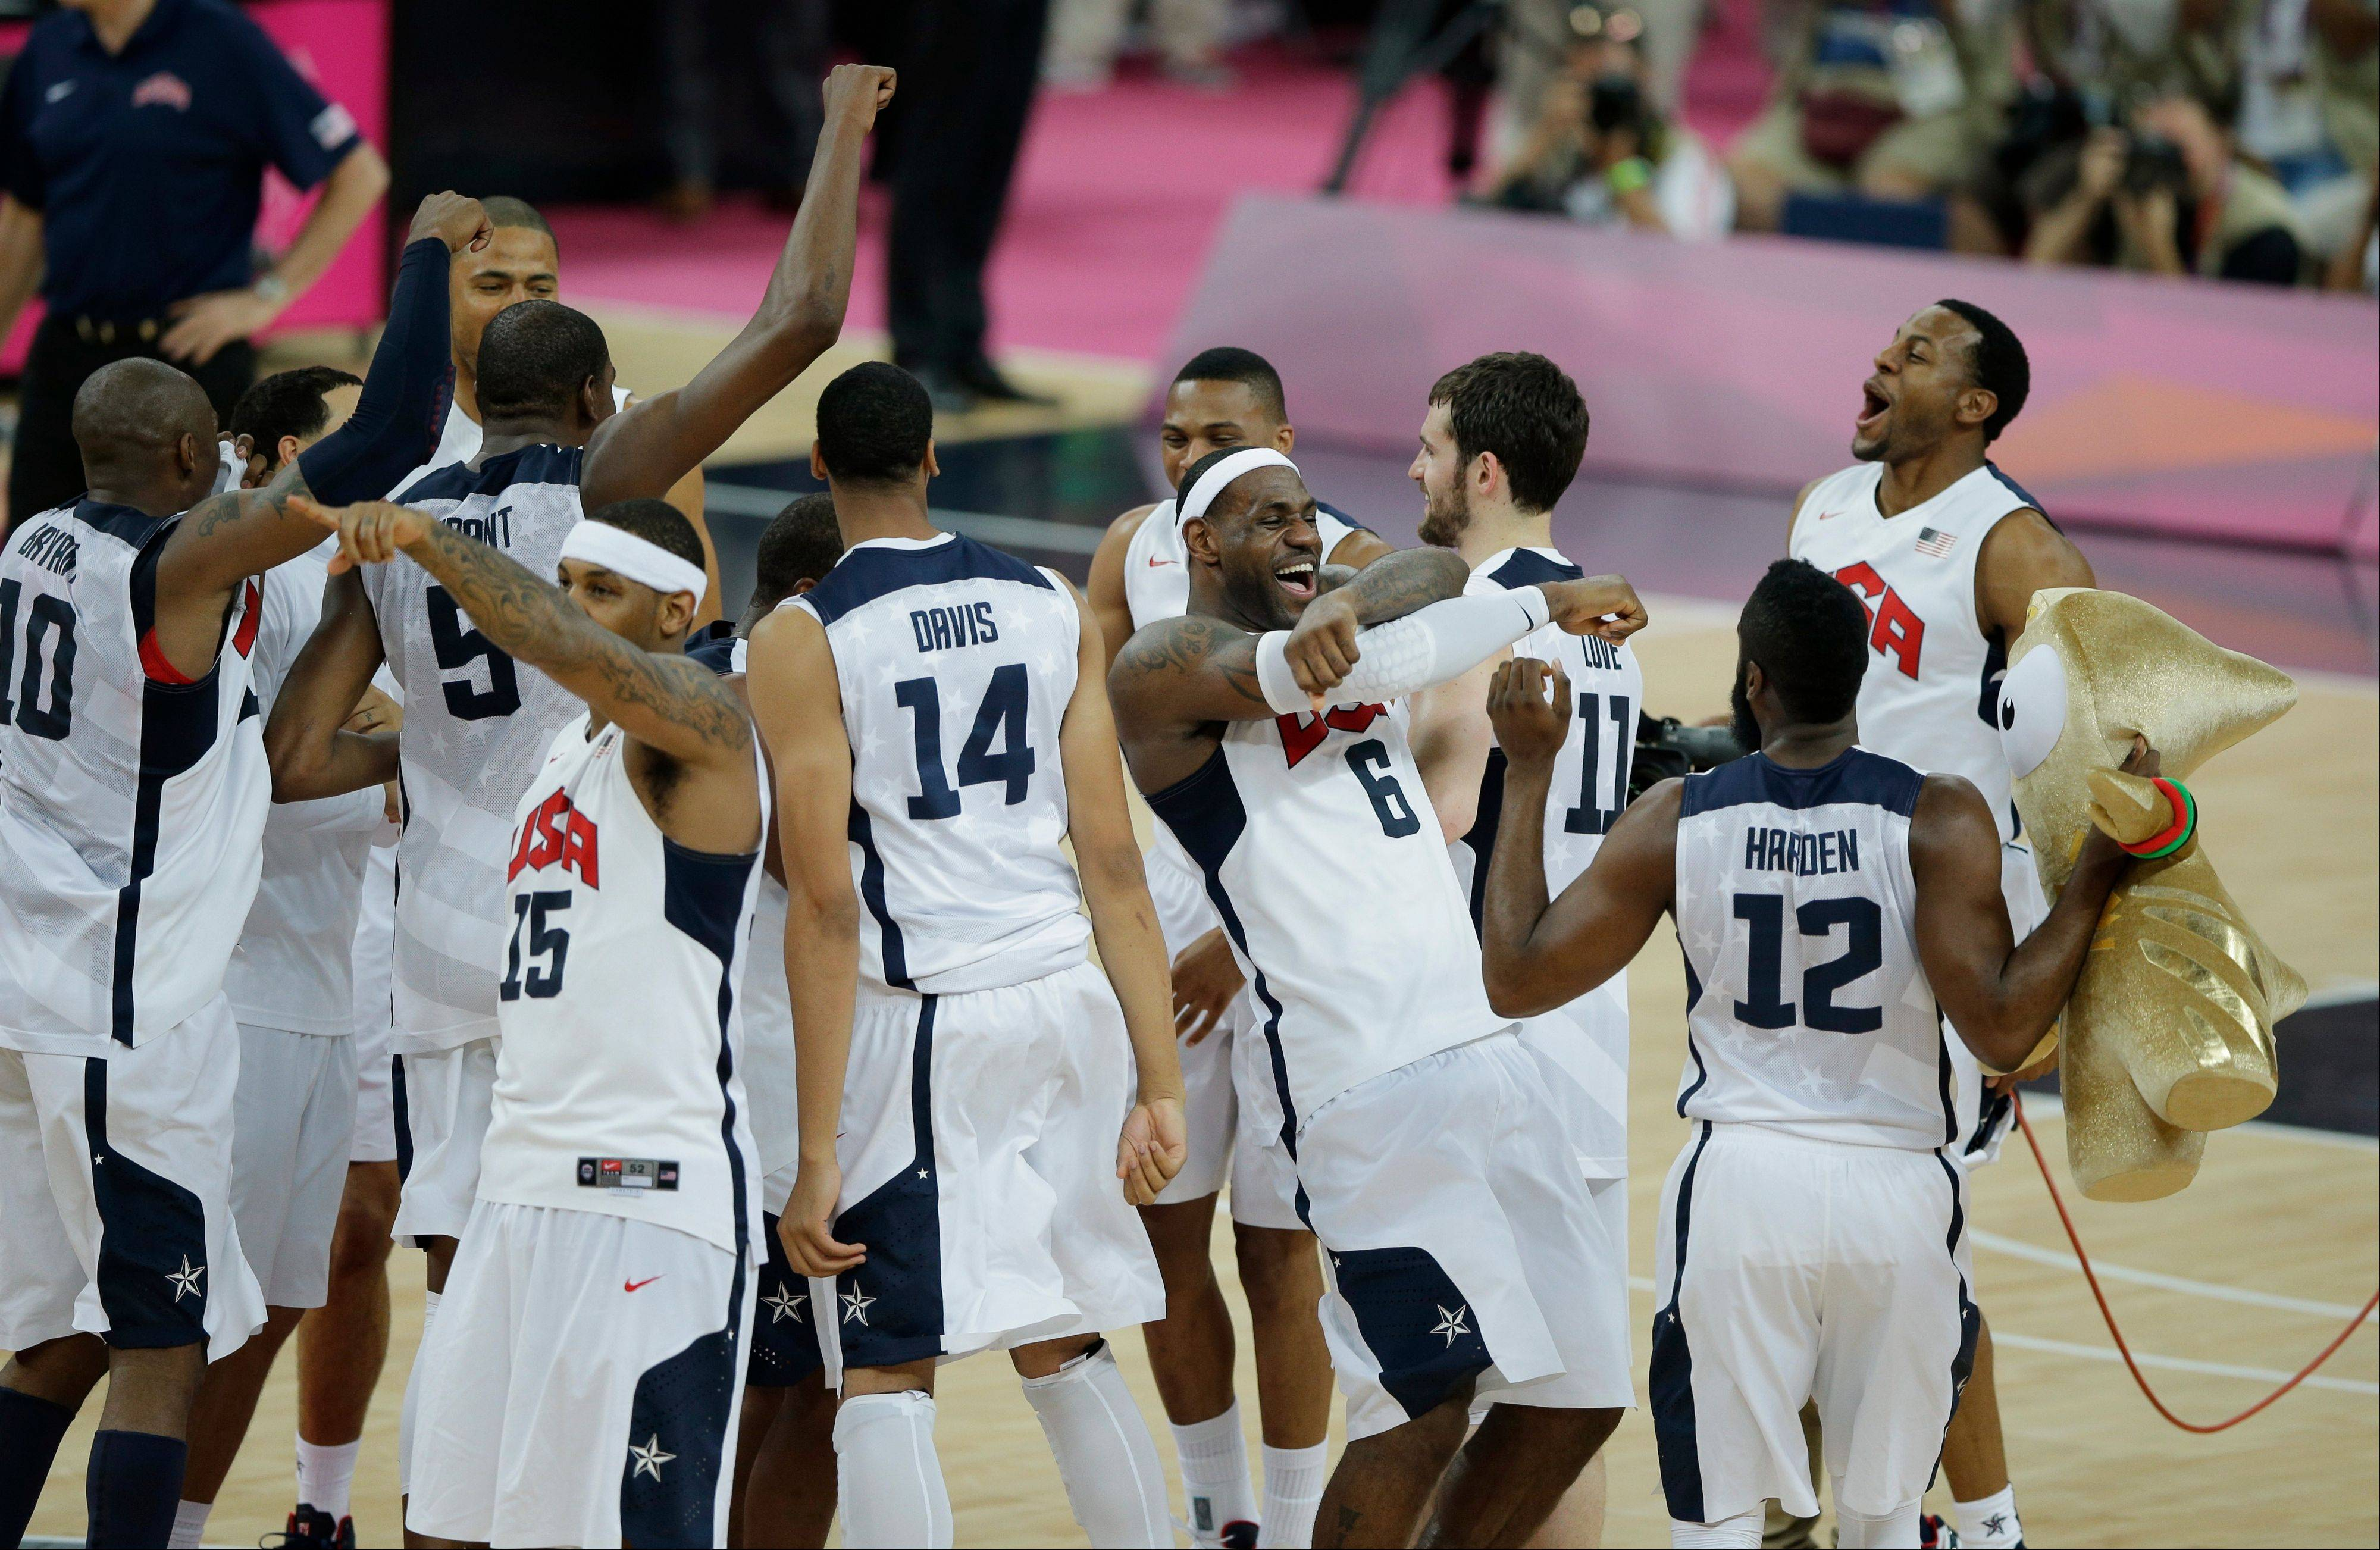 Members of the United States basketball team celebrate after defeating Spain in the men's gold medal basketball game at the 2012 Summer Olympics Sunday.